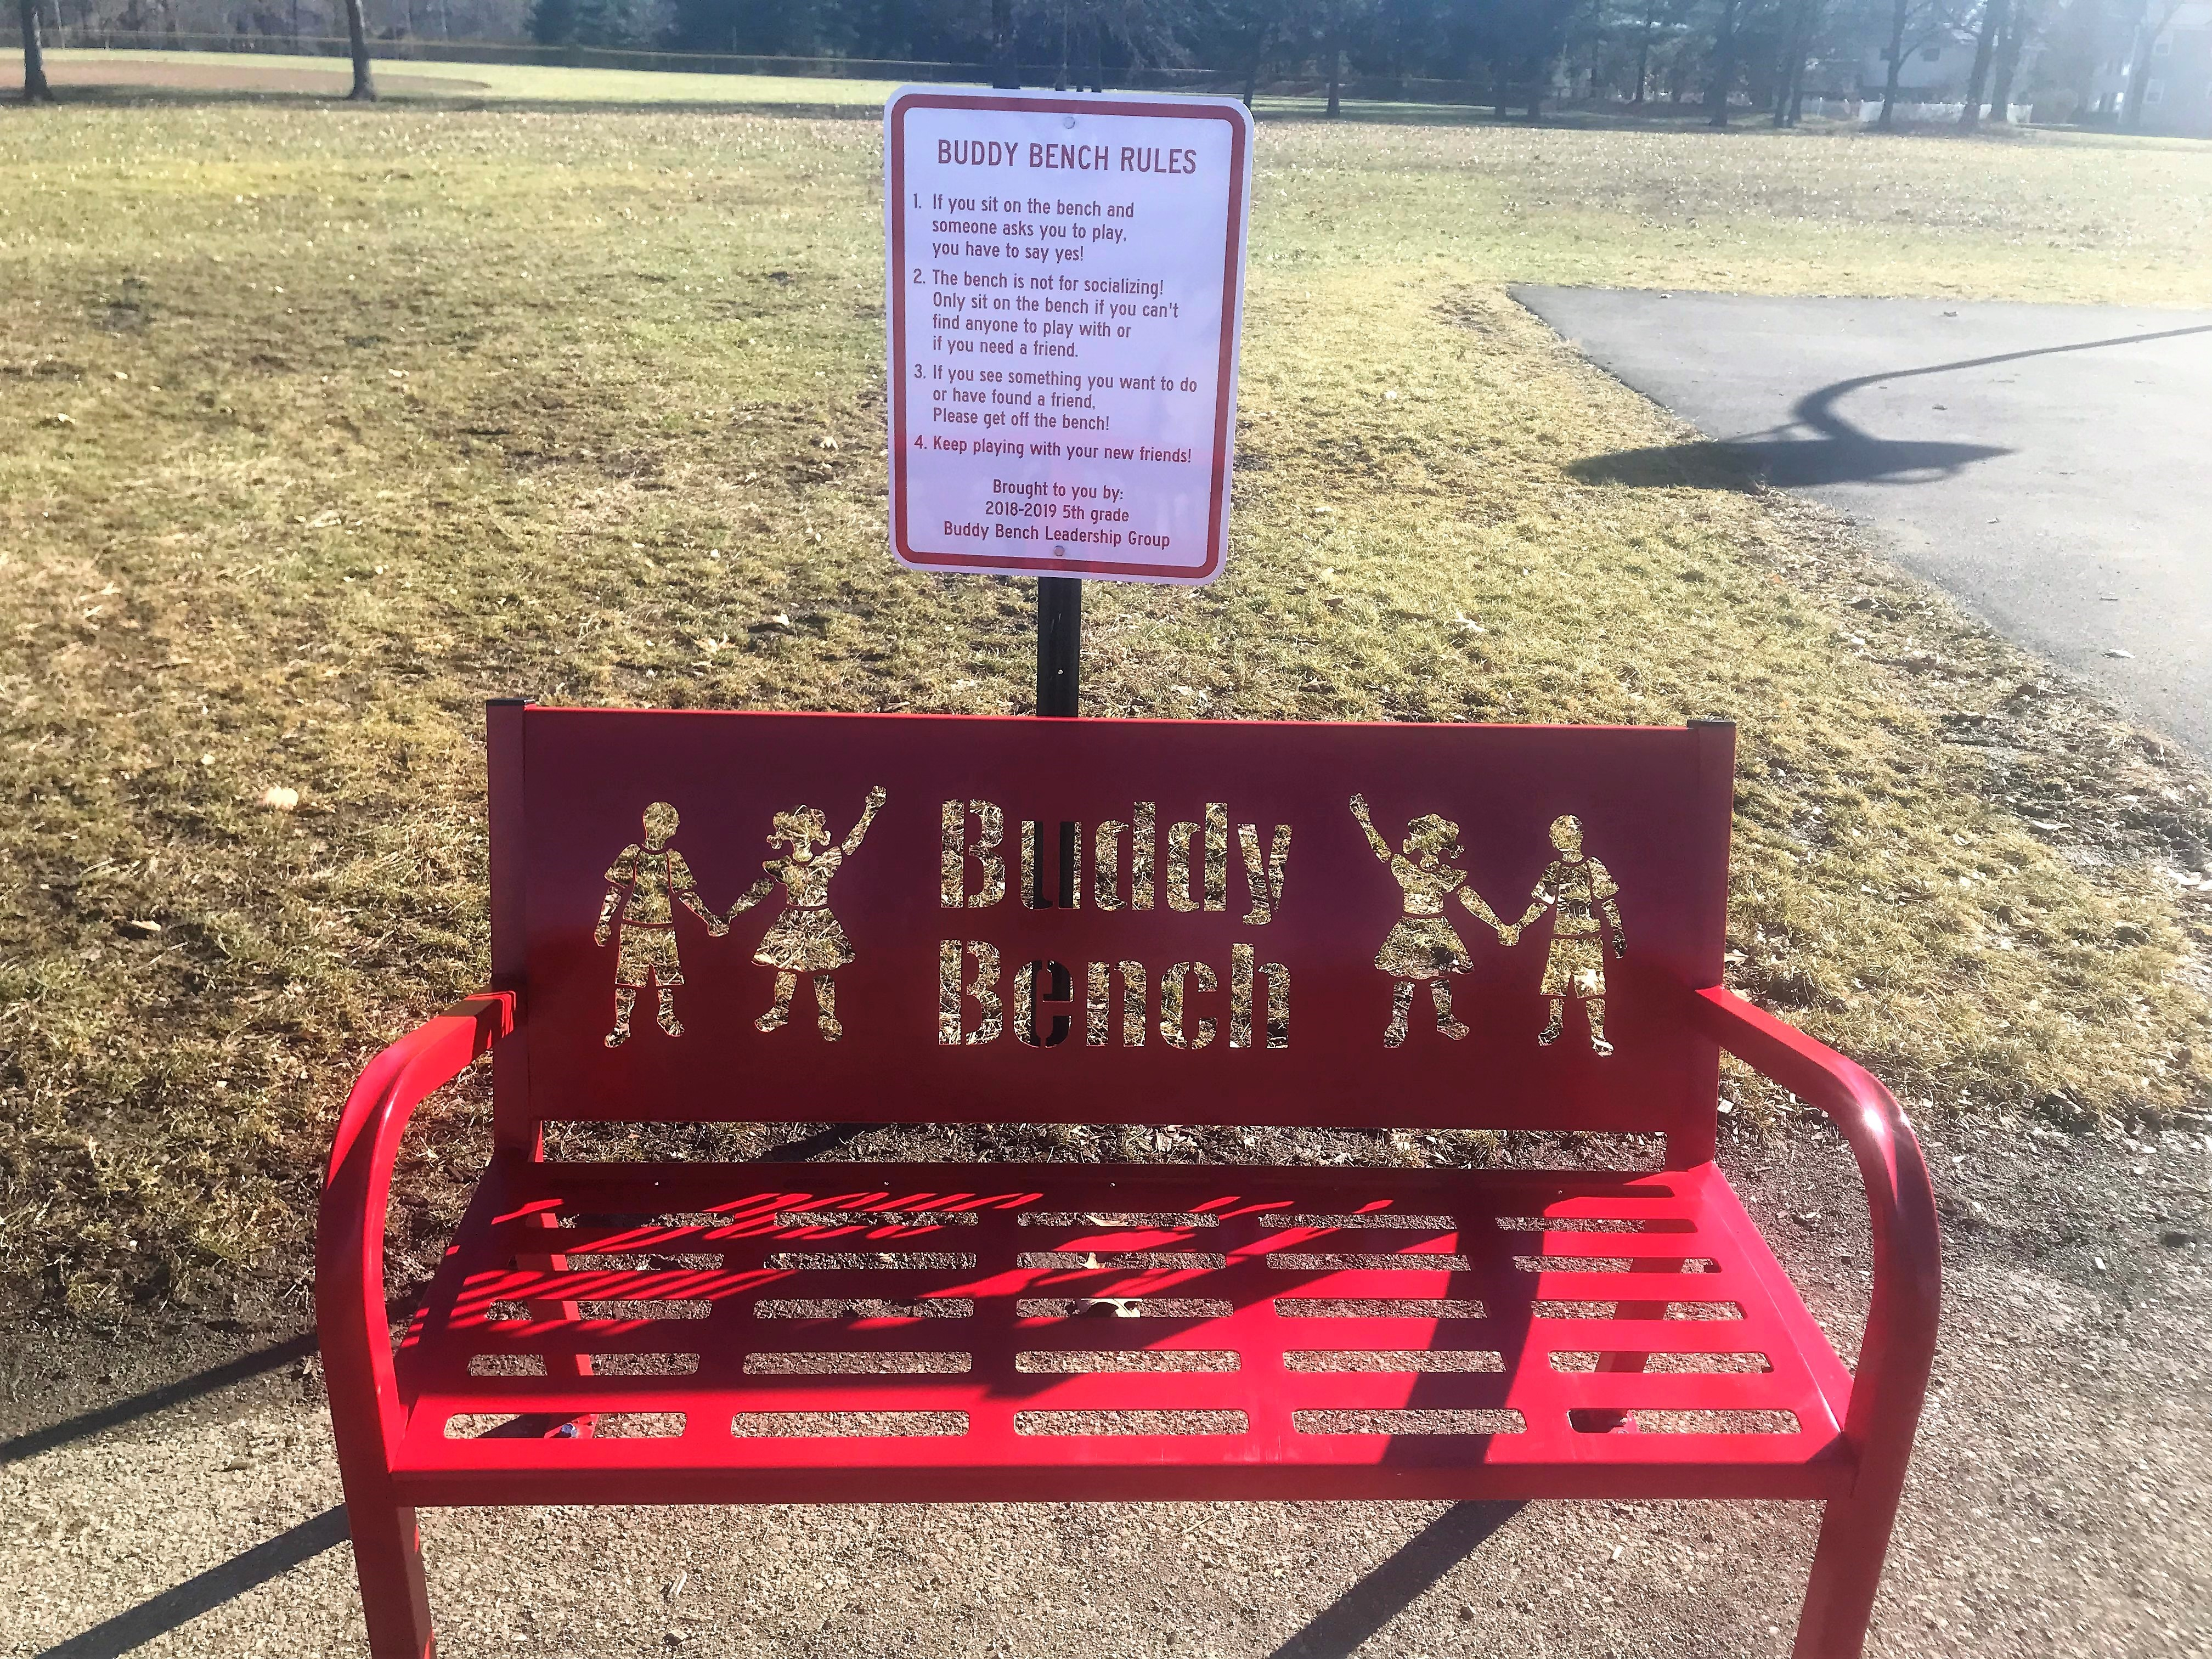 Cherrington's Buddy Bench